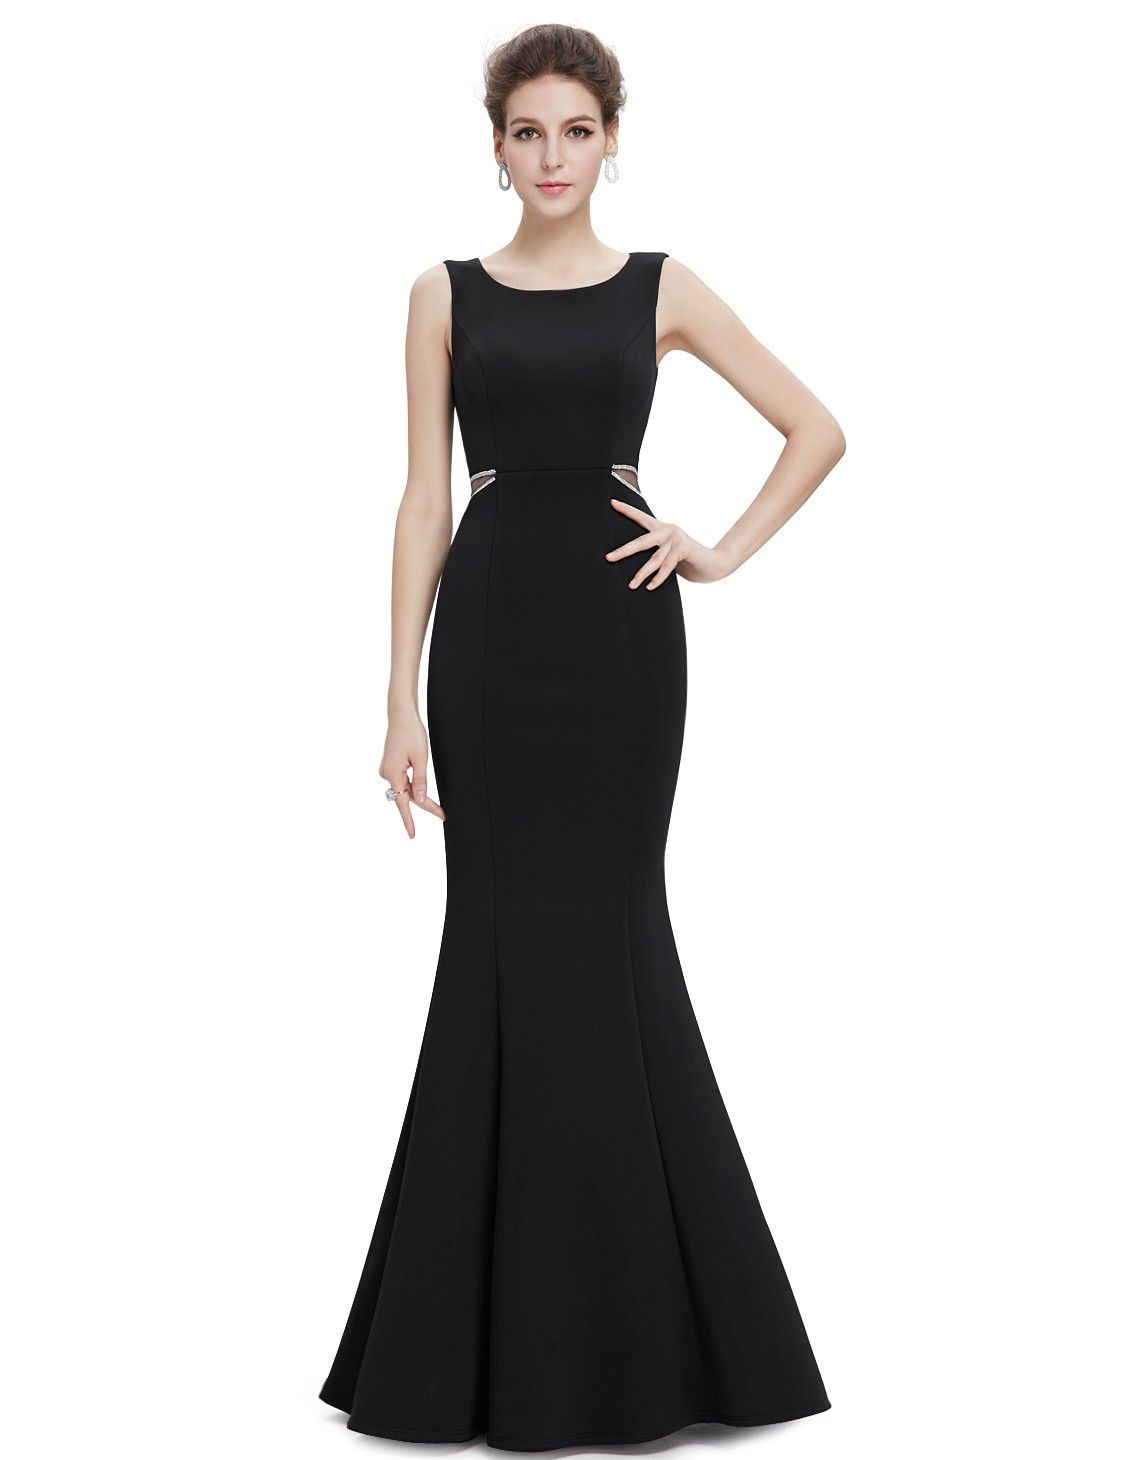 c0cebe74194 Sexy Fitted Mermaid Evening Dress with Sheer Panels in 2019